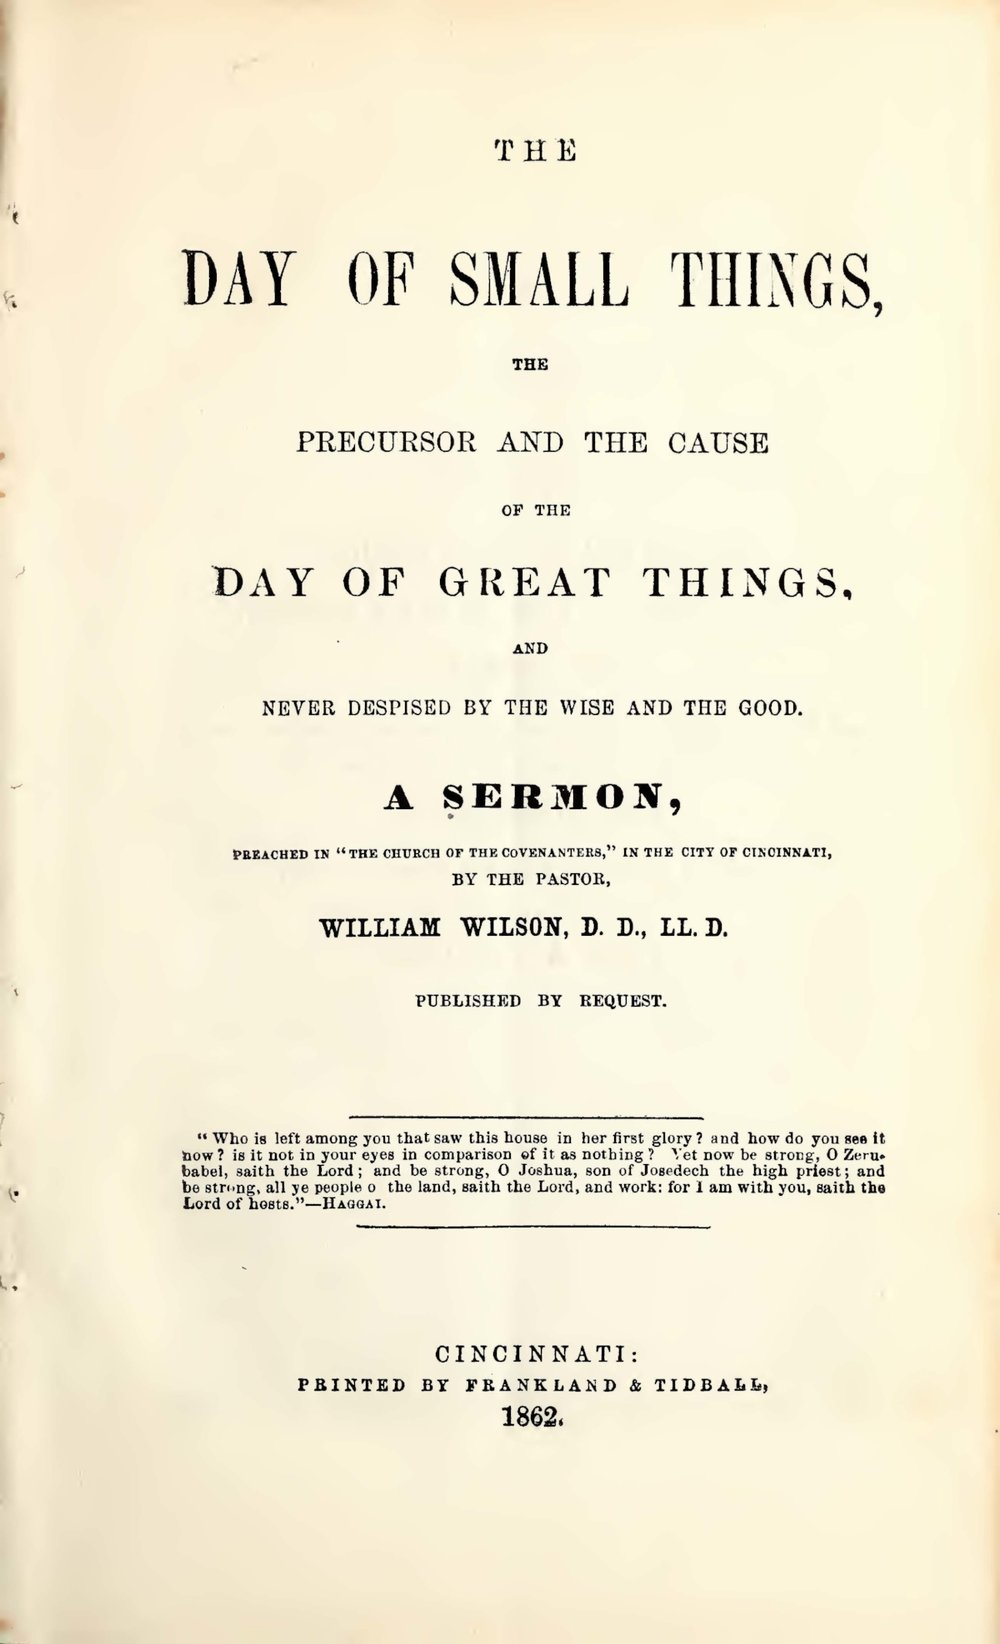 Wilson, William, The Day of Small Things Title Page.jpg